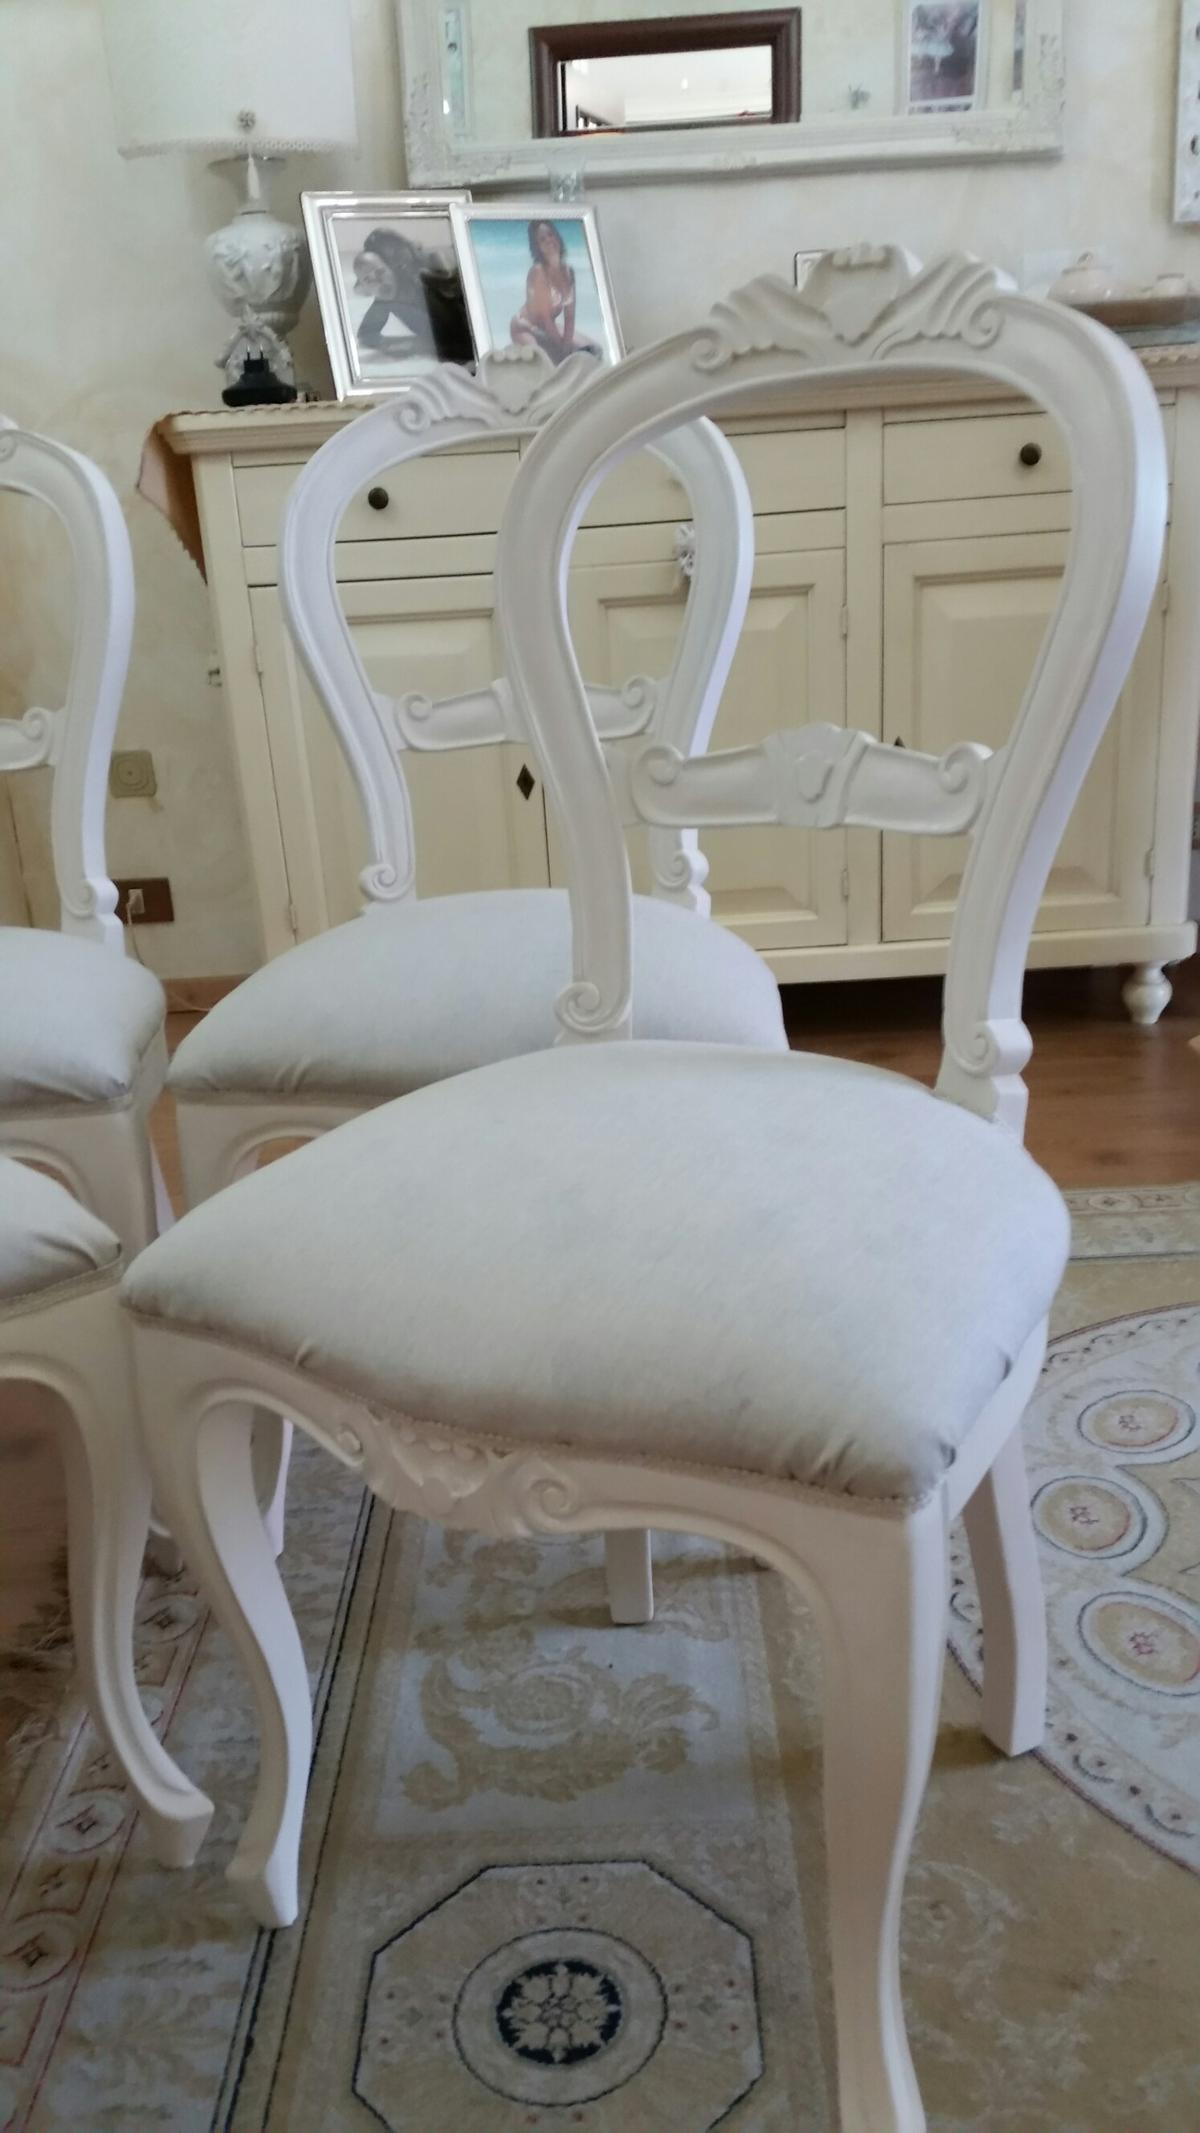 Sedie Stile Shabby Chic.Sedie Shabby Chic In 00169 Roma For 240 00 For Sale Shpock